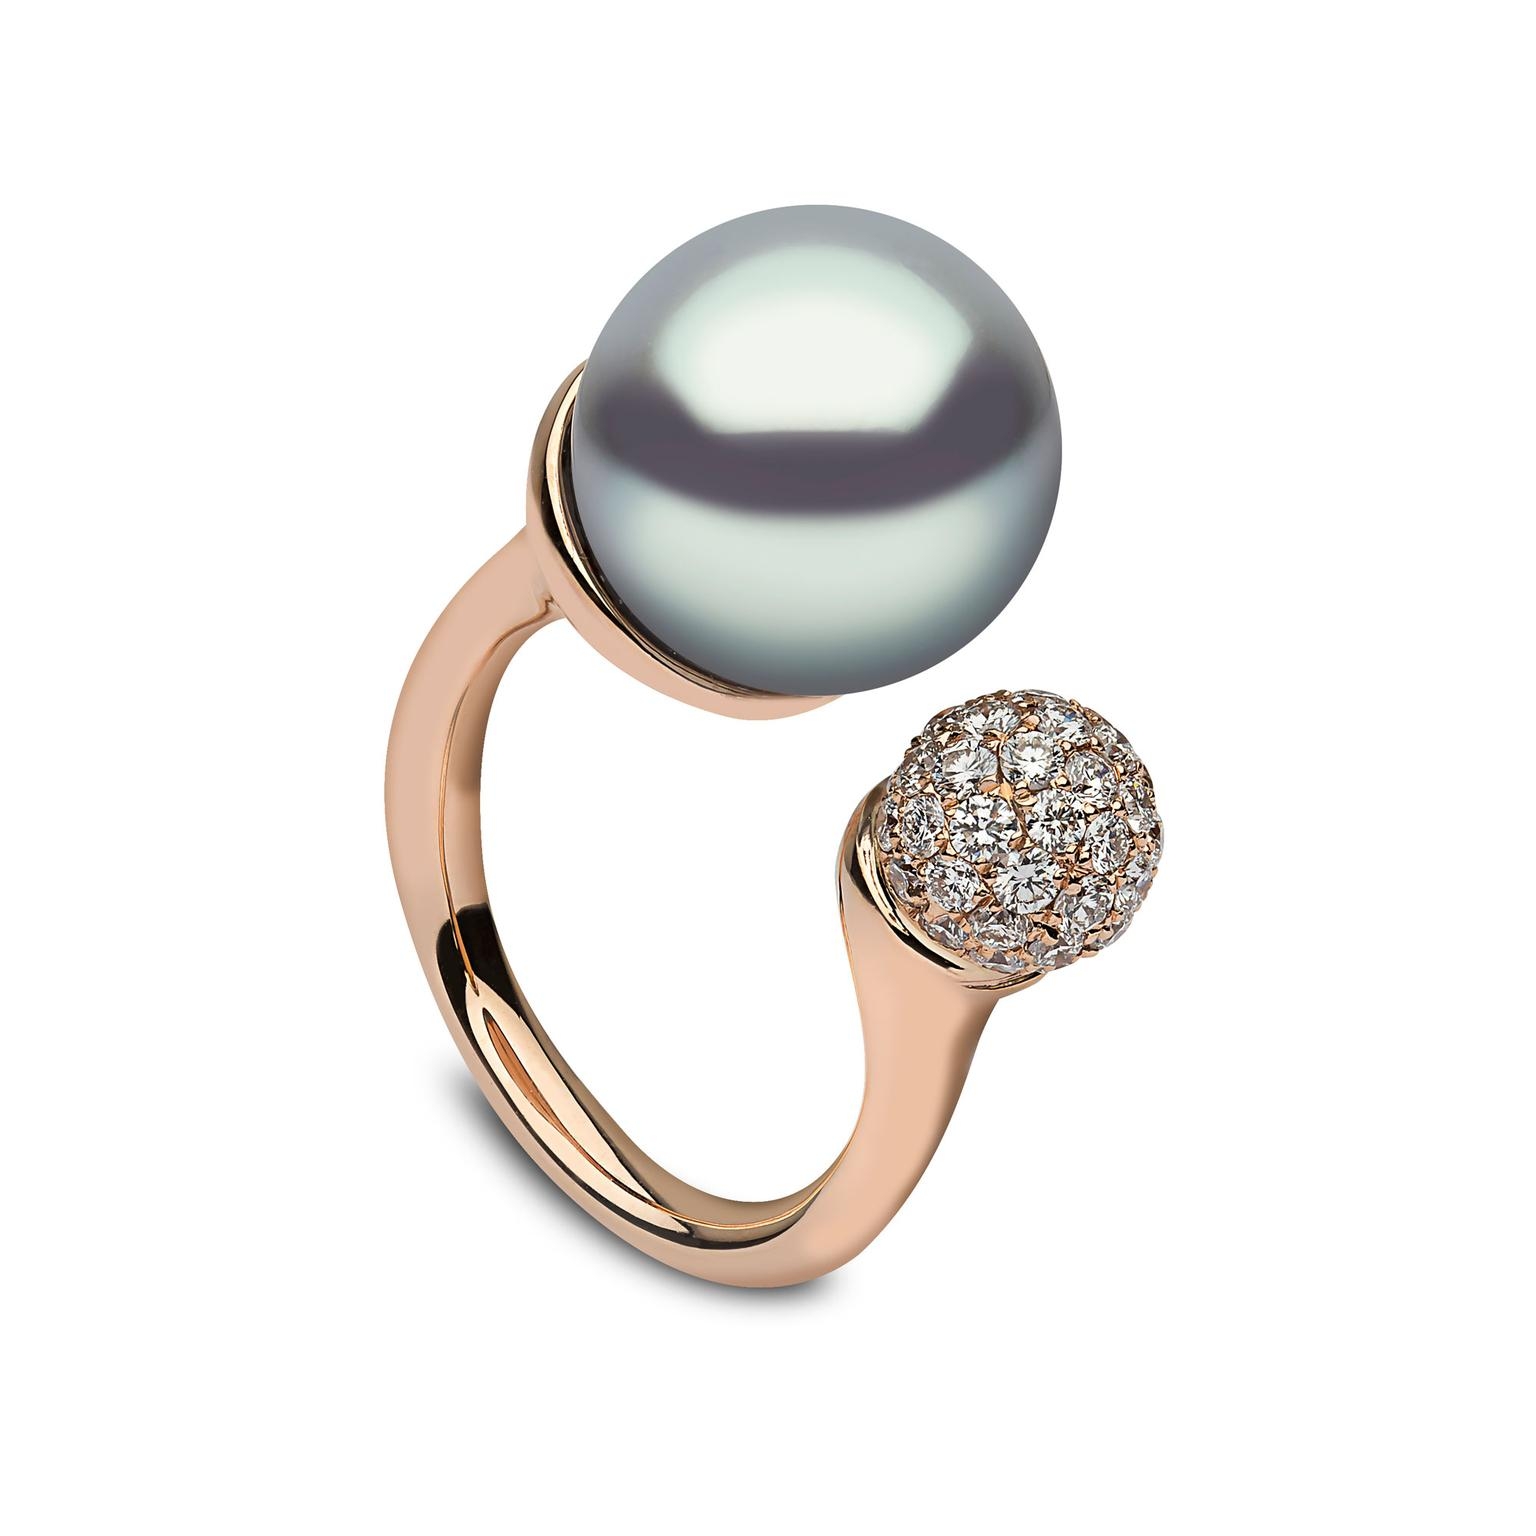 YOKO London Tahitian pearl ring